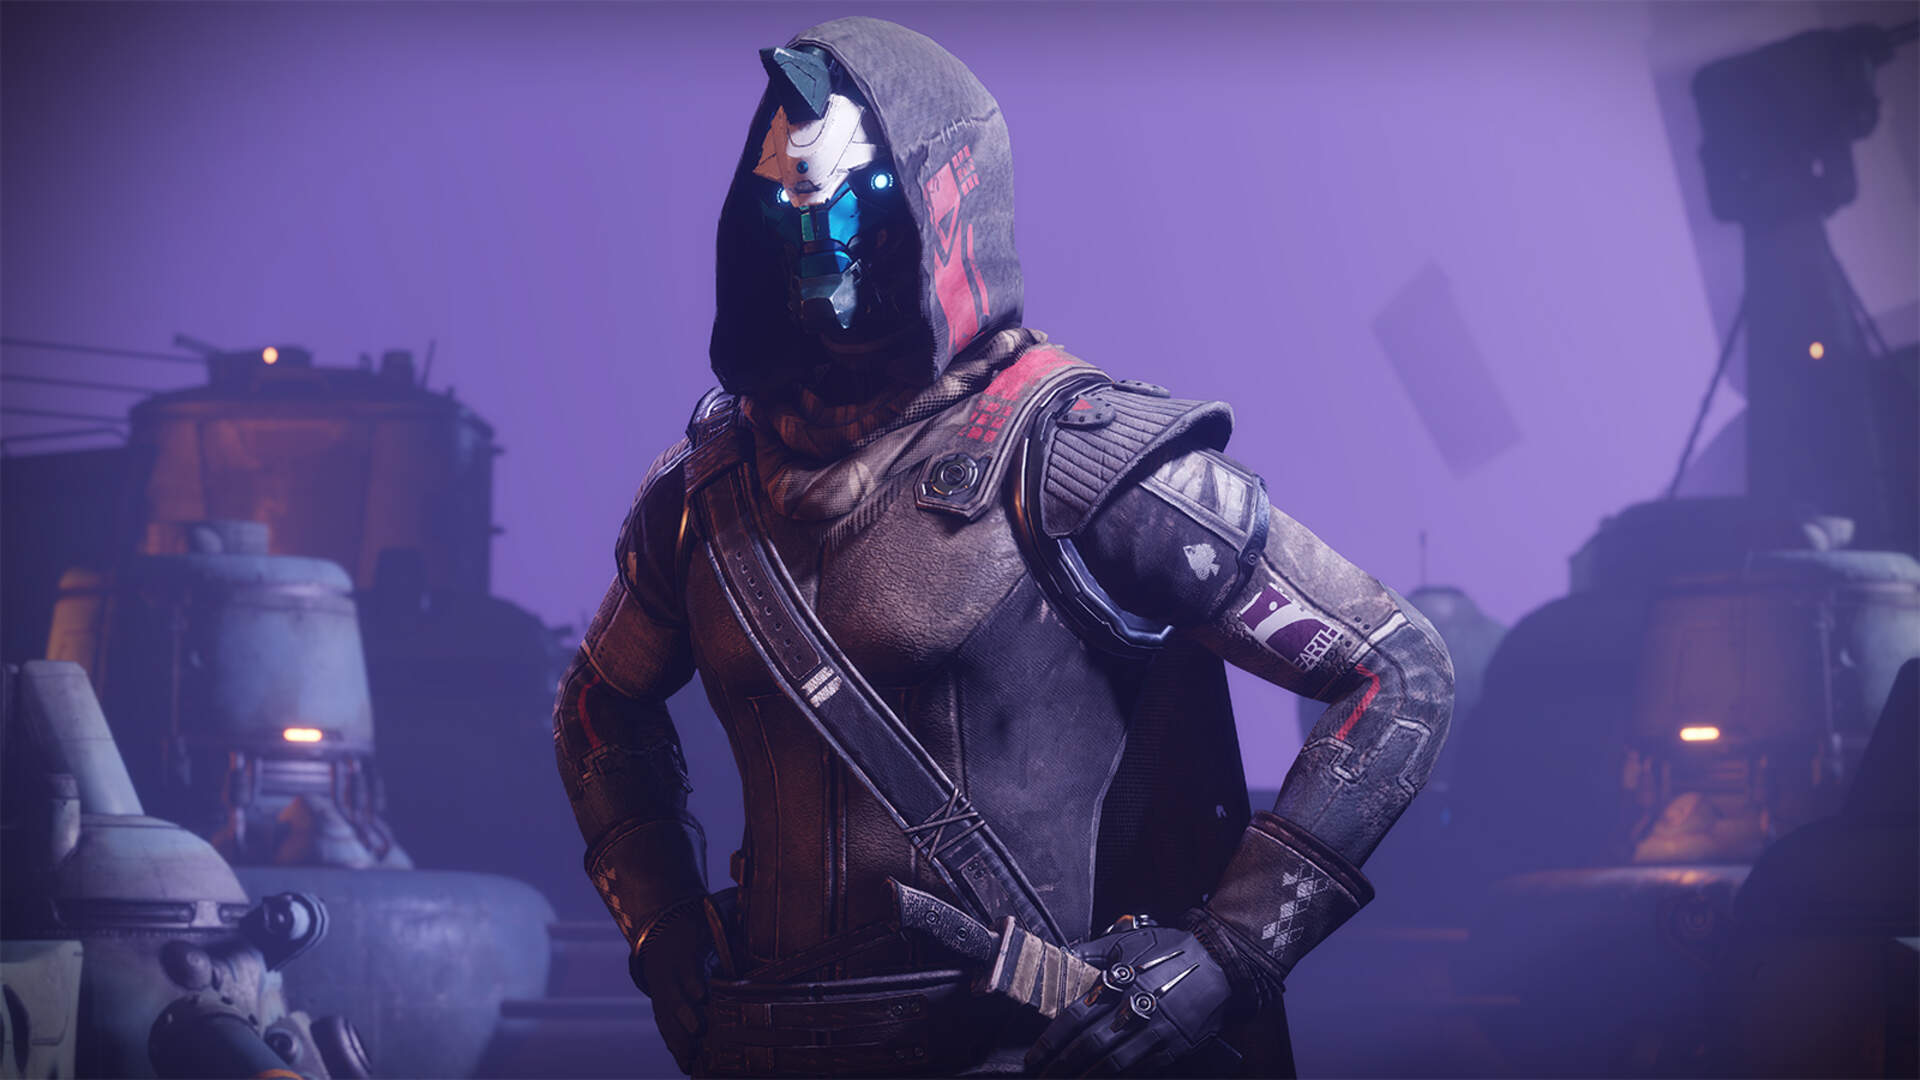 Bungie Job Listings Indicate Its New IP Is Something Comedic and Whimsical